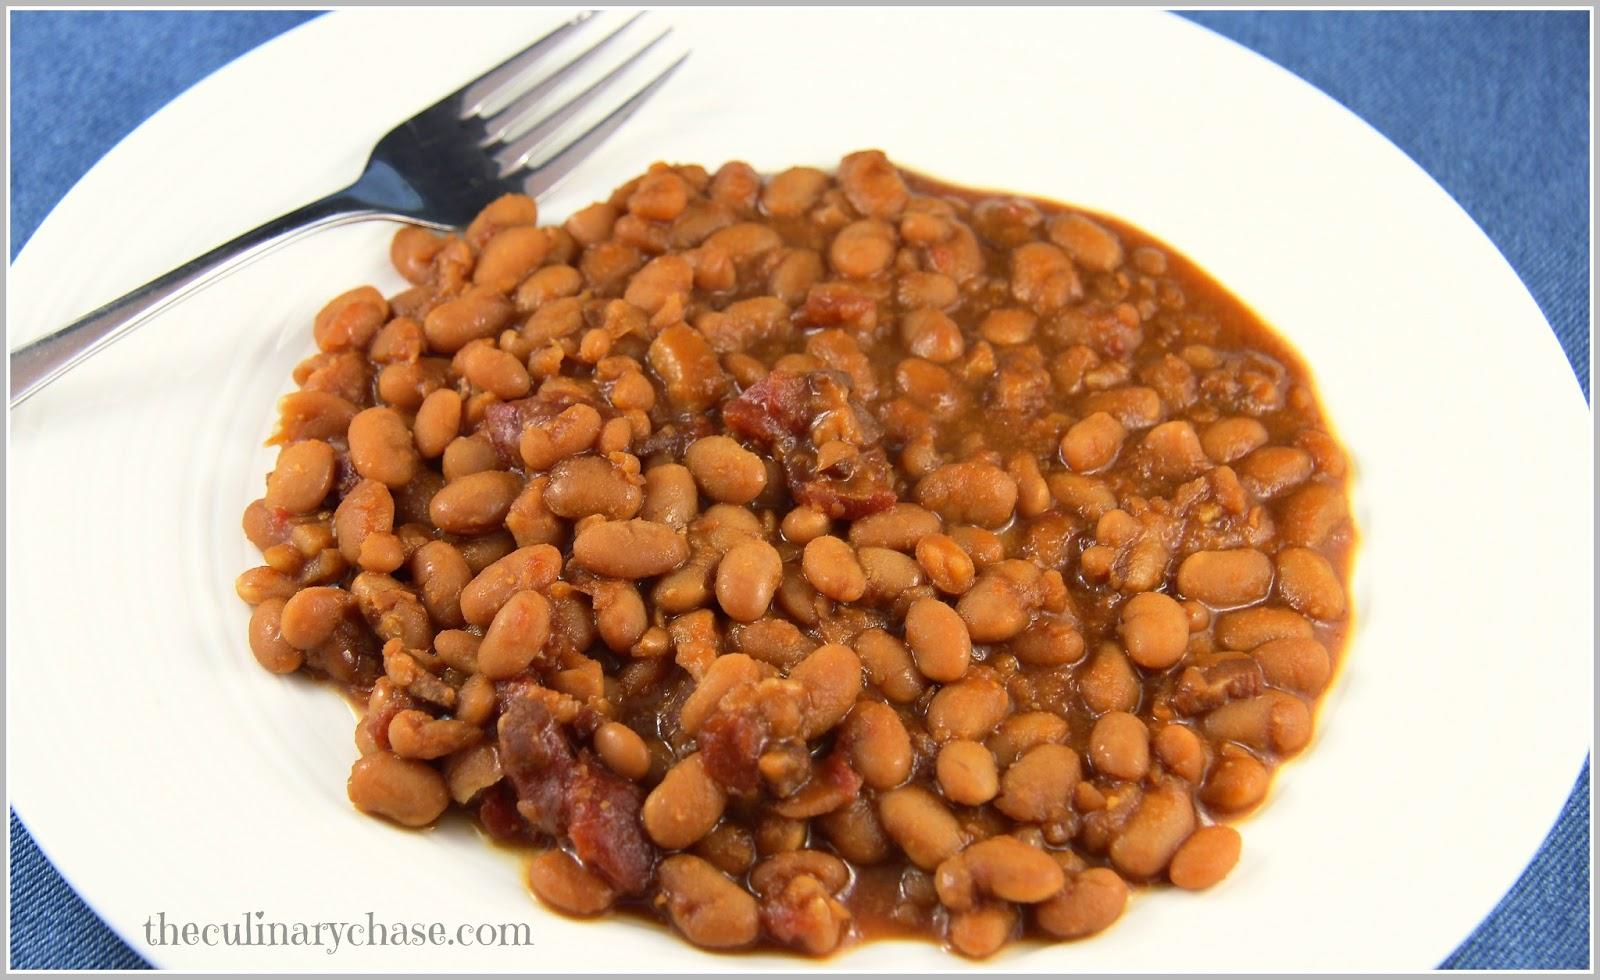 Baked Beans & A Tribute To Lunch Hour NYC - The Culinary Chase